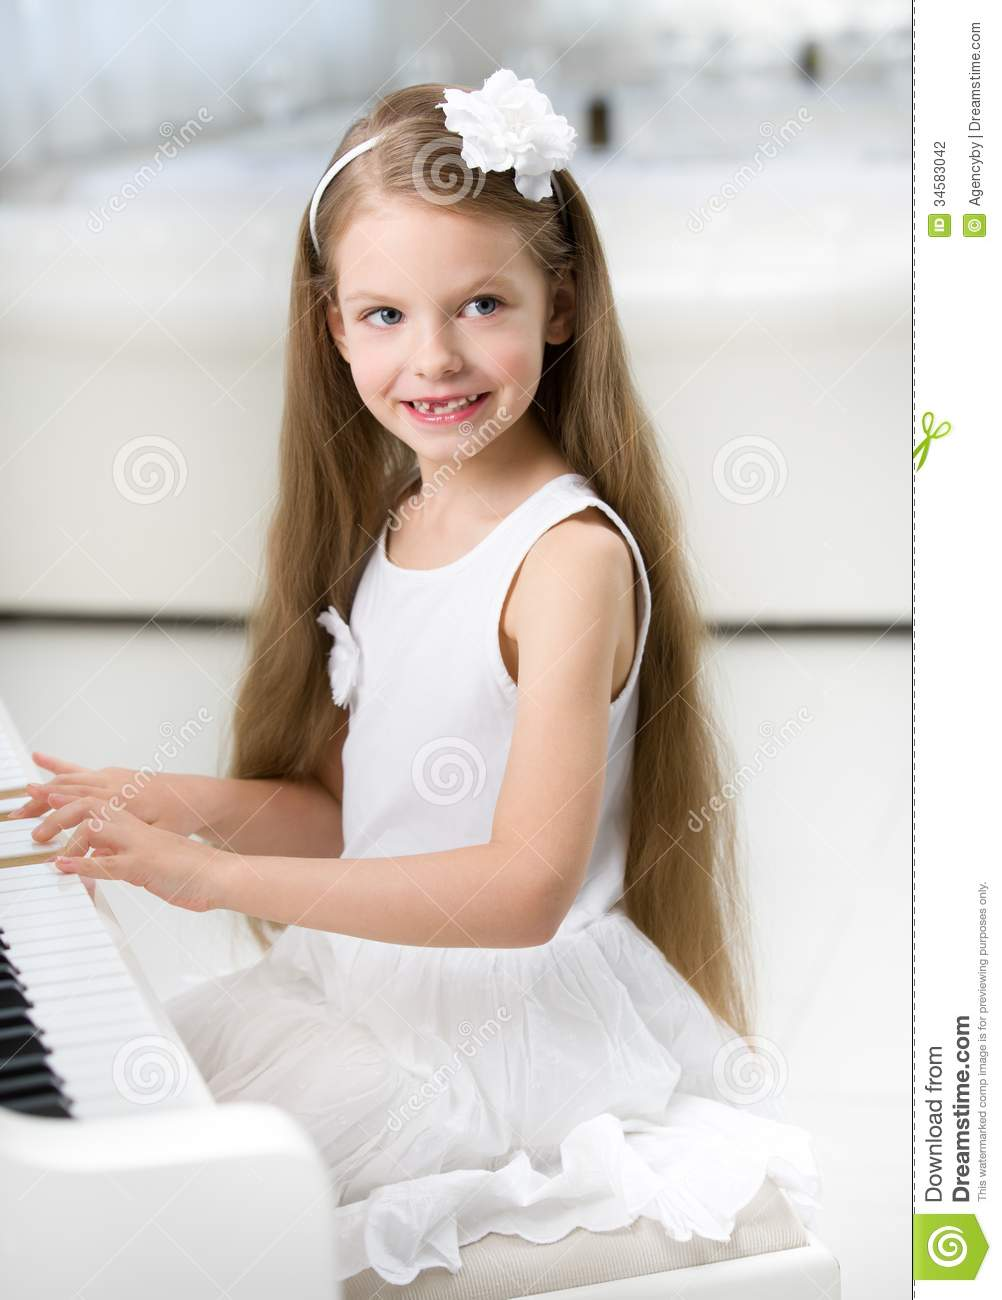 Little girl nude playing piano